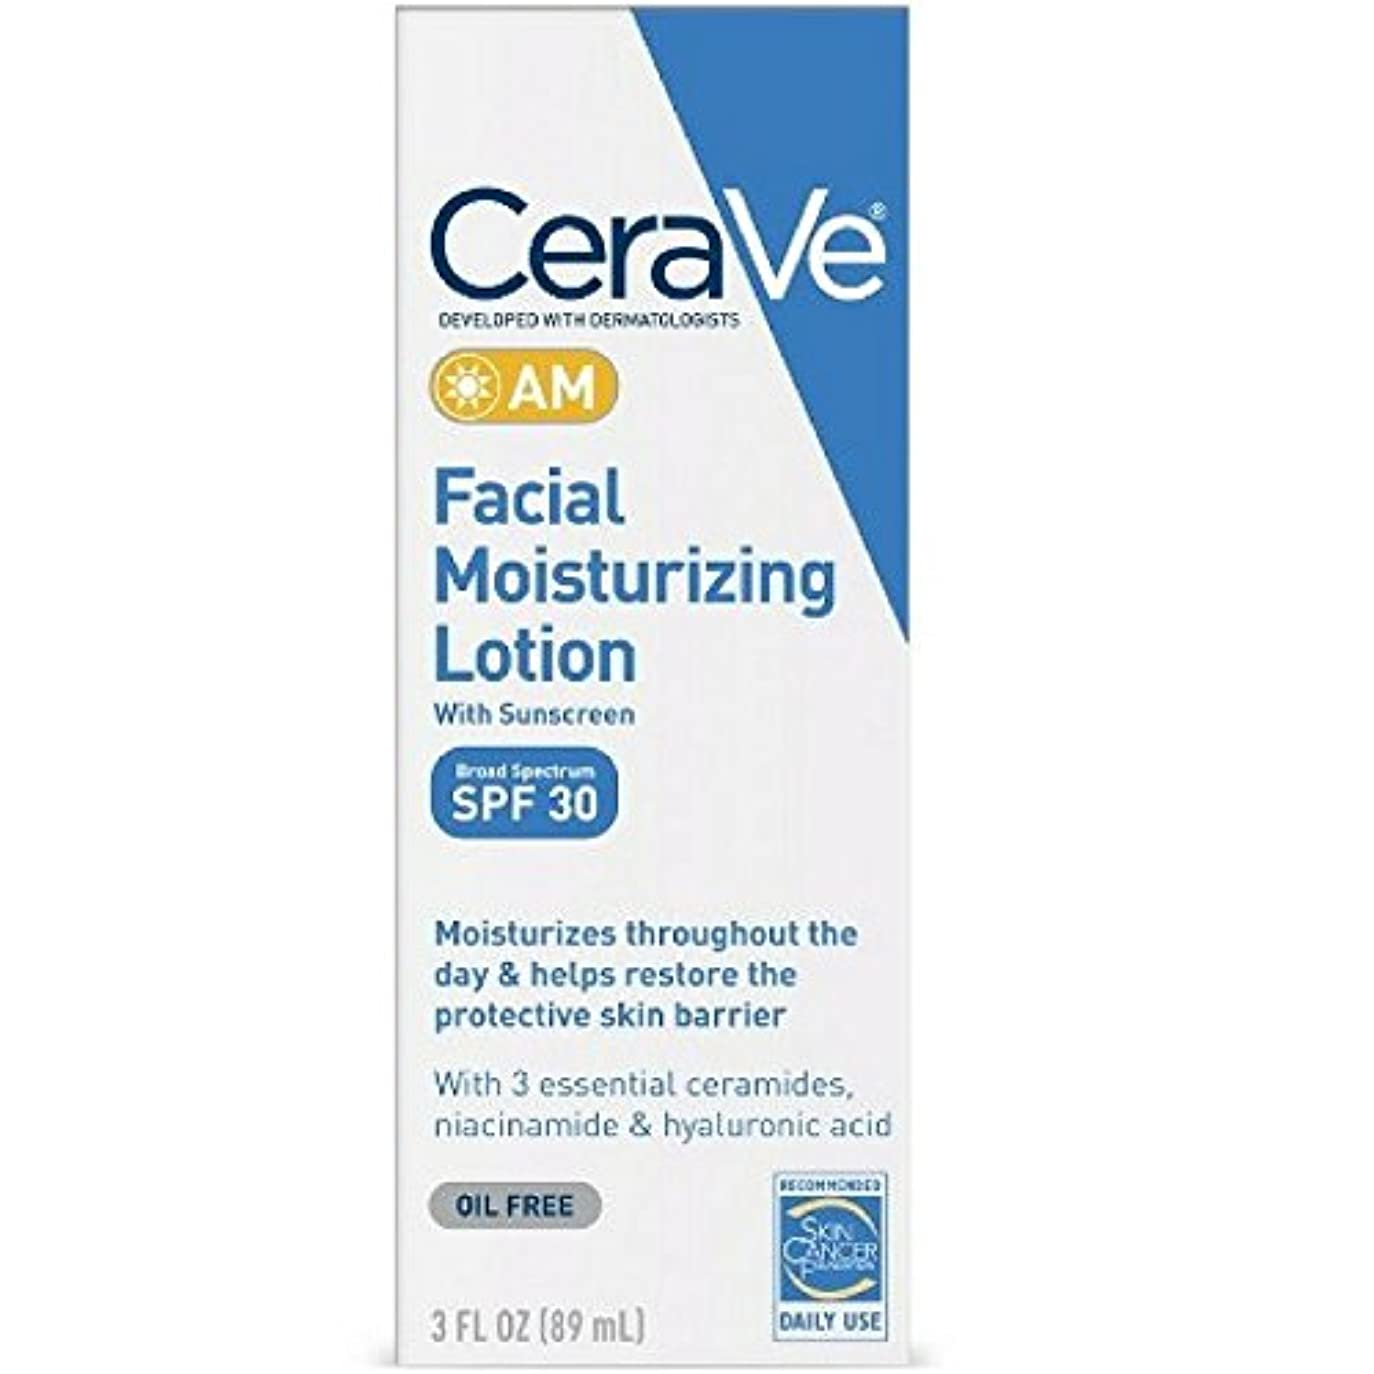 大きさ公正確さCerave Cerave Day Time Facial Moisturizing Lotion AM